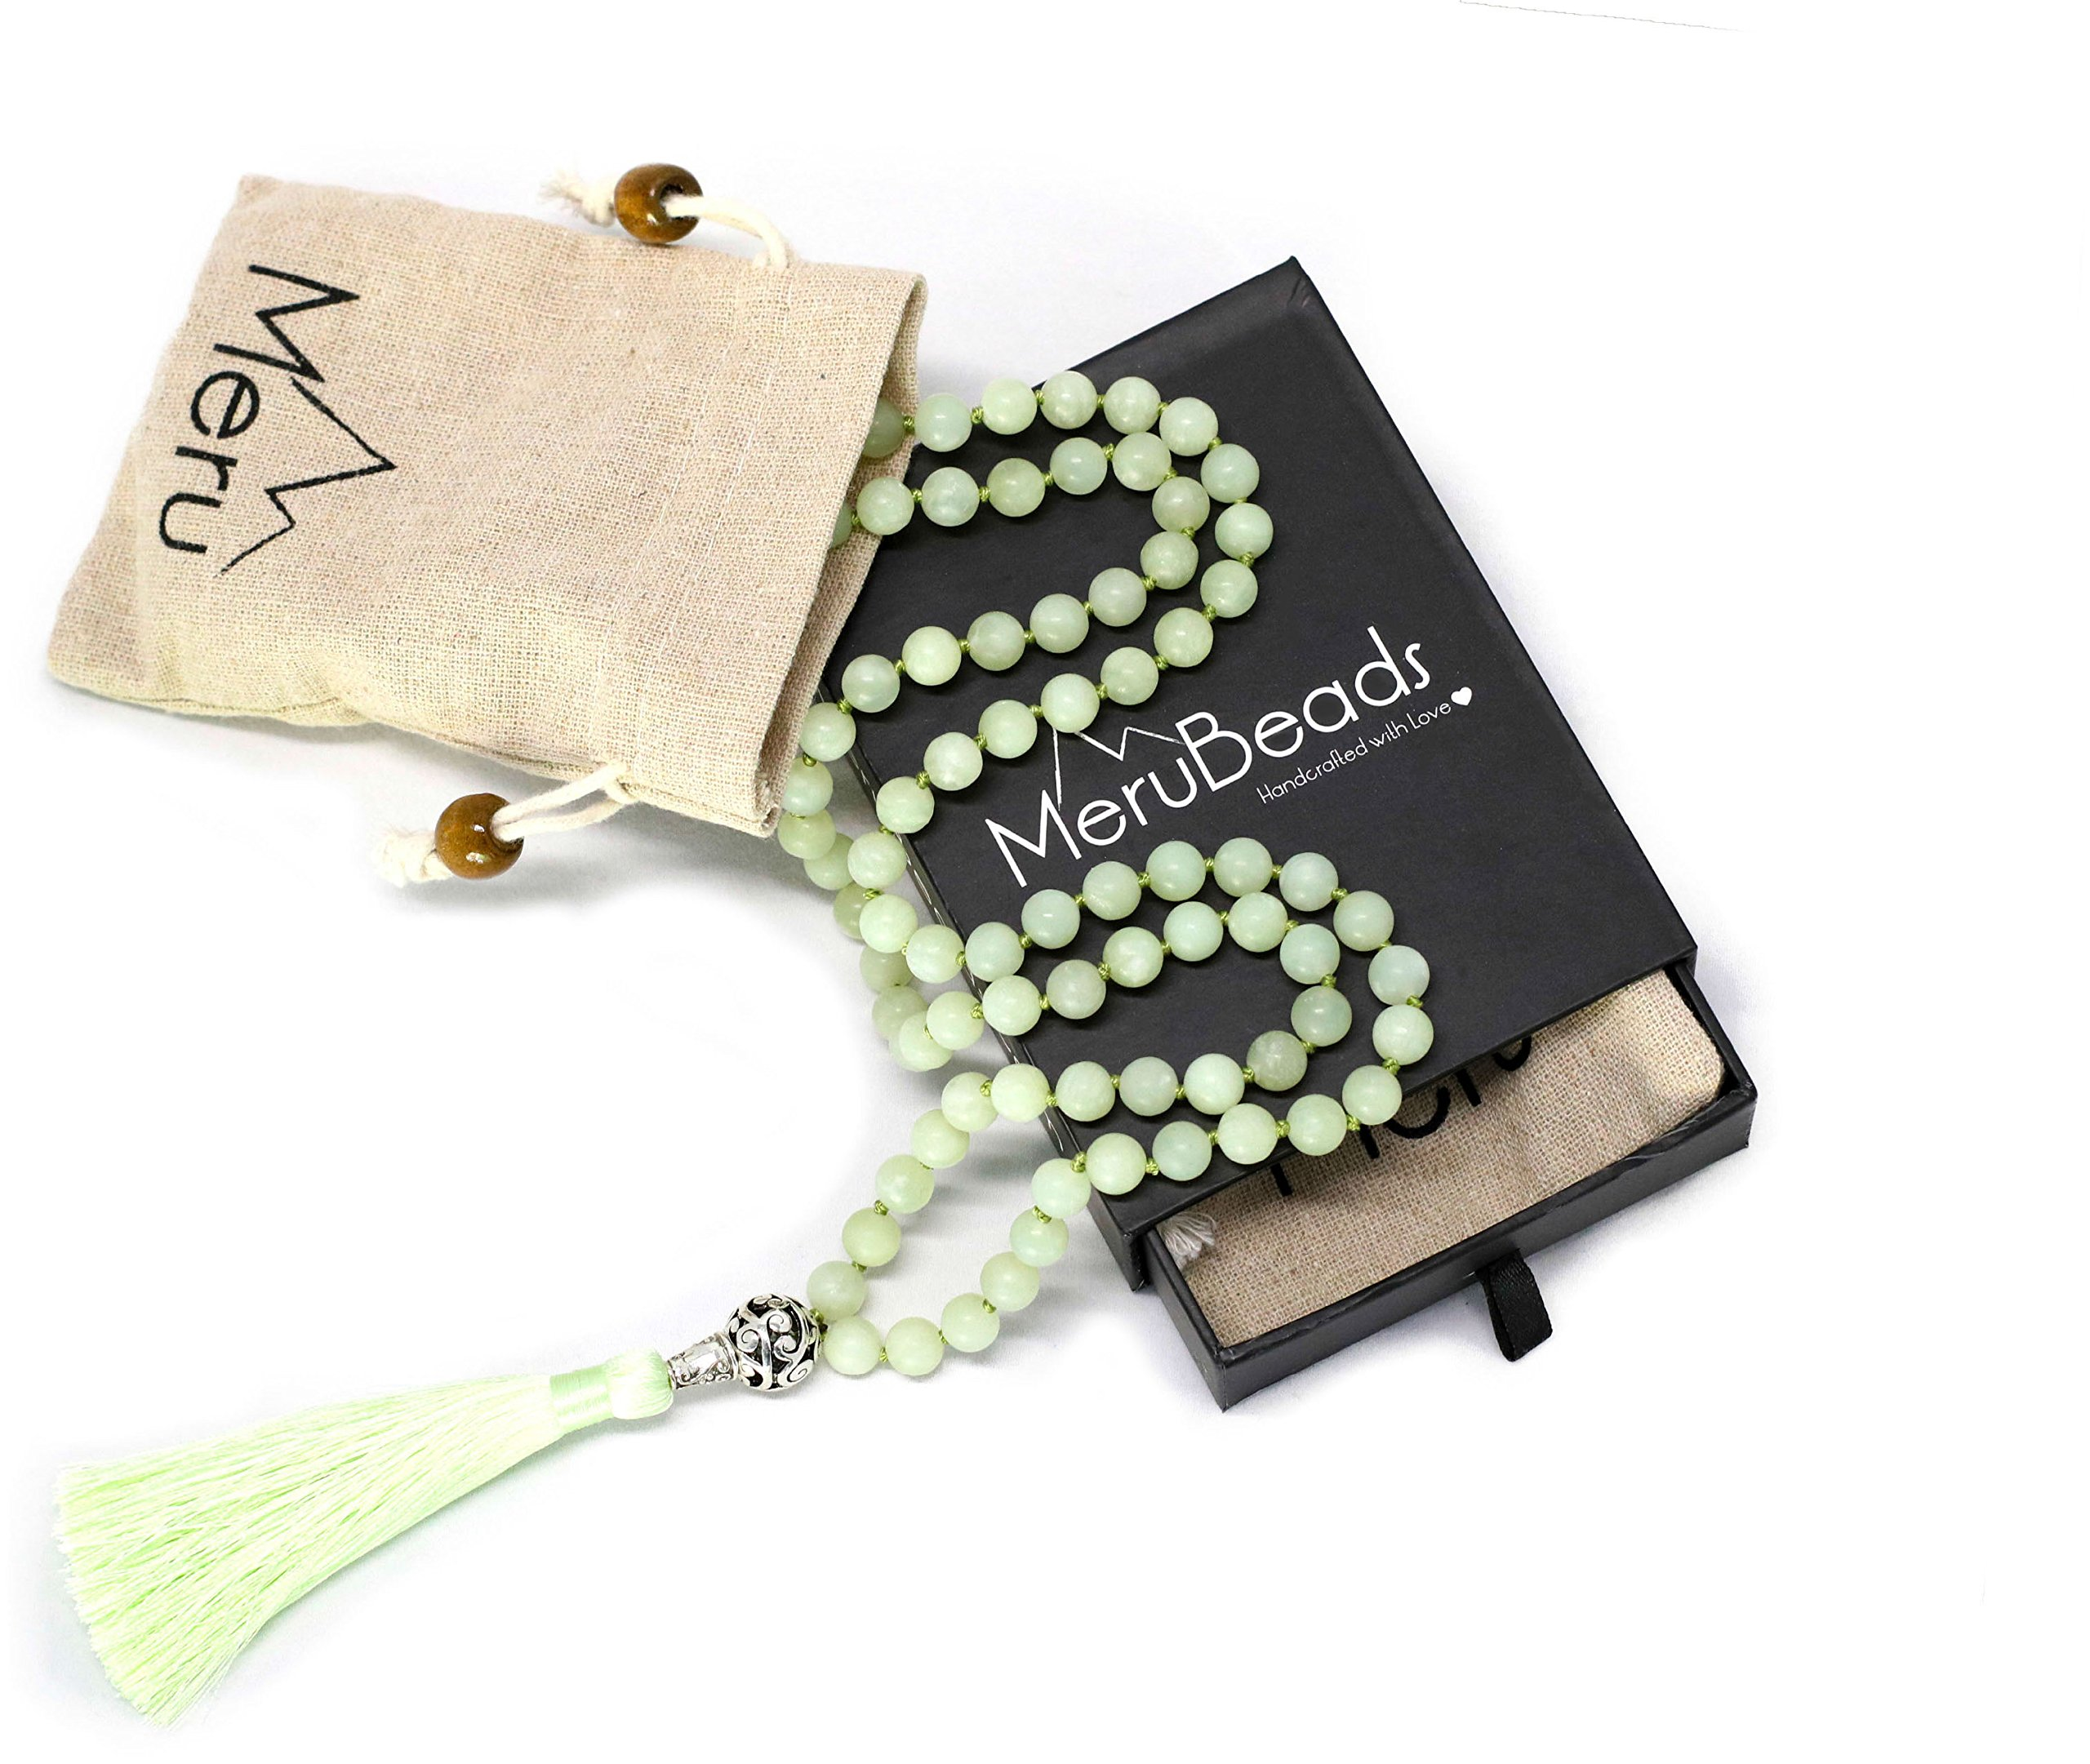 Premium Frosted Green Jade Mala Beads Necklace - 108 Mala Beads 8mm - Japa Mala Beads - Mala Beads for Women - Tibetan Mala Beads - Buddhist Mala Beads - Green Necklace - Mala Beads for Men